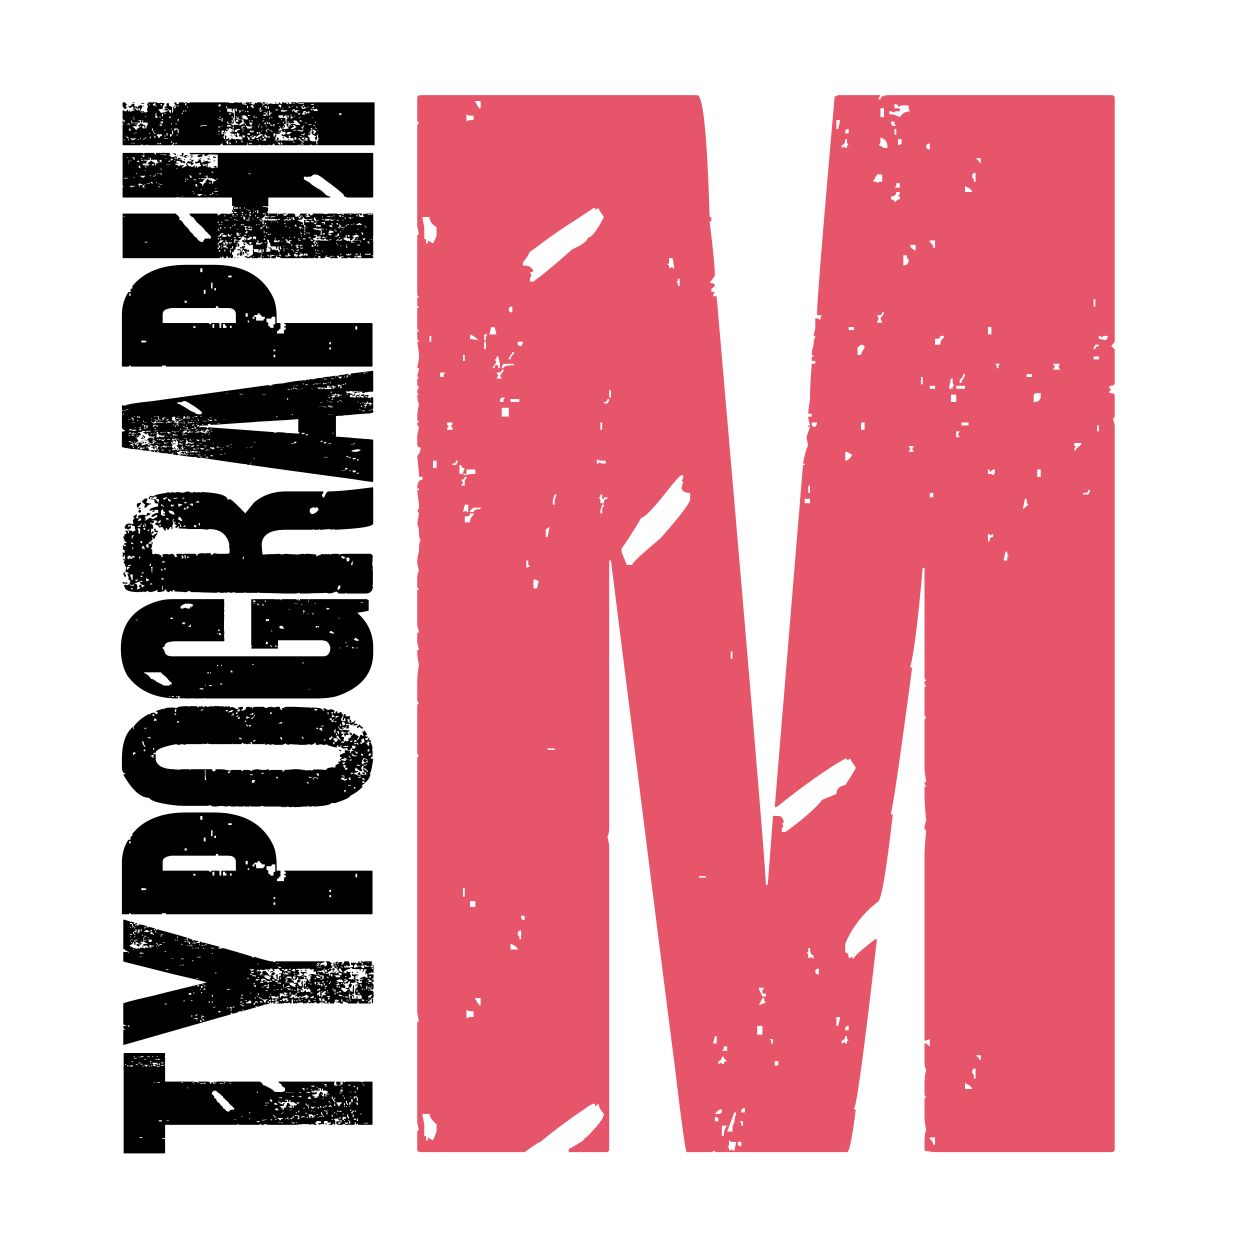 Typography Morozyuk's profile picture